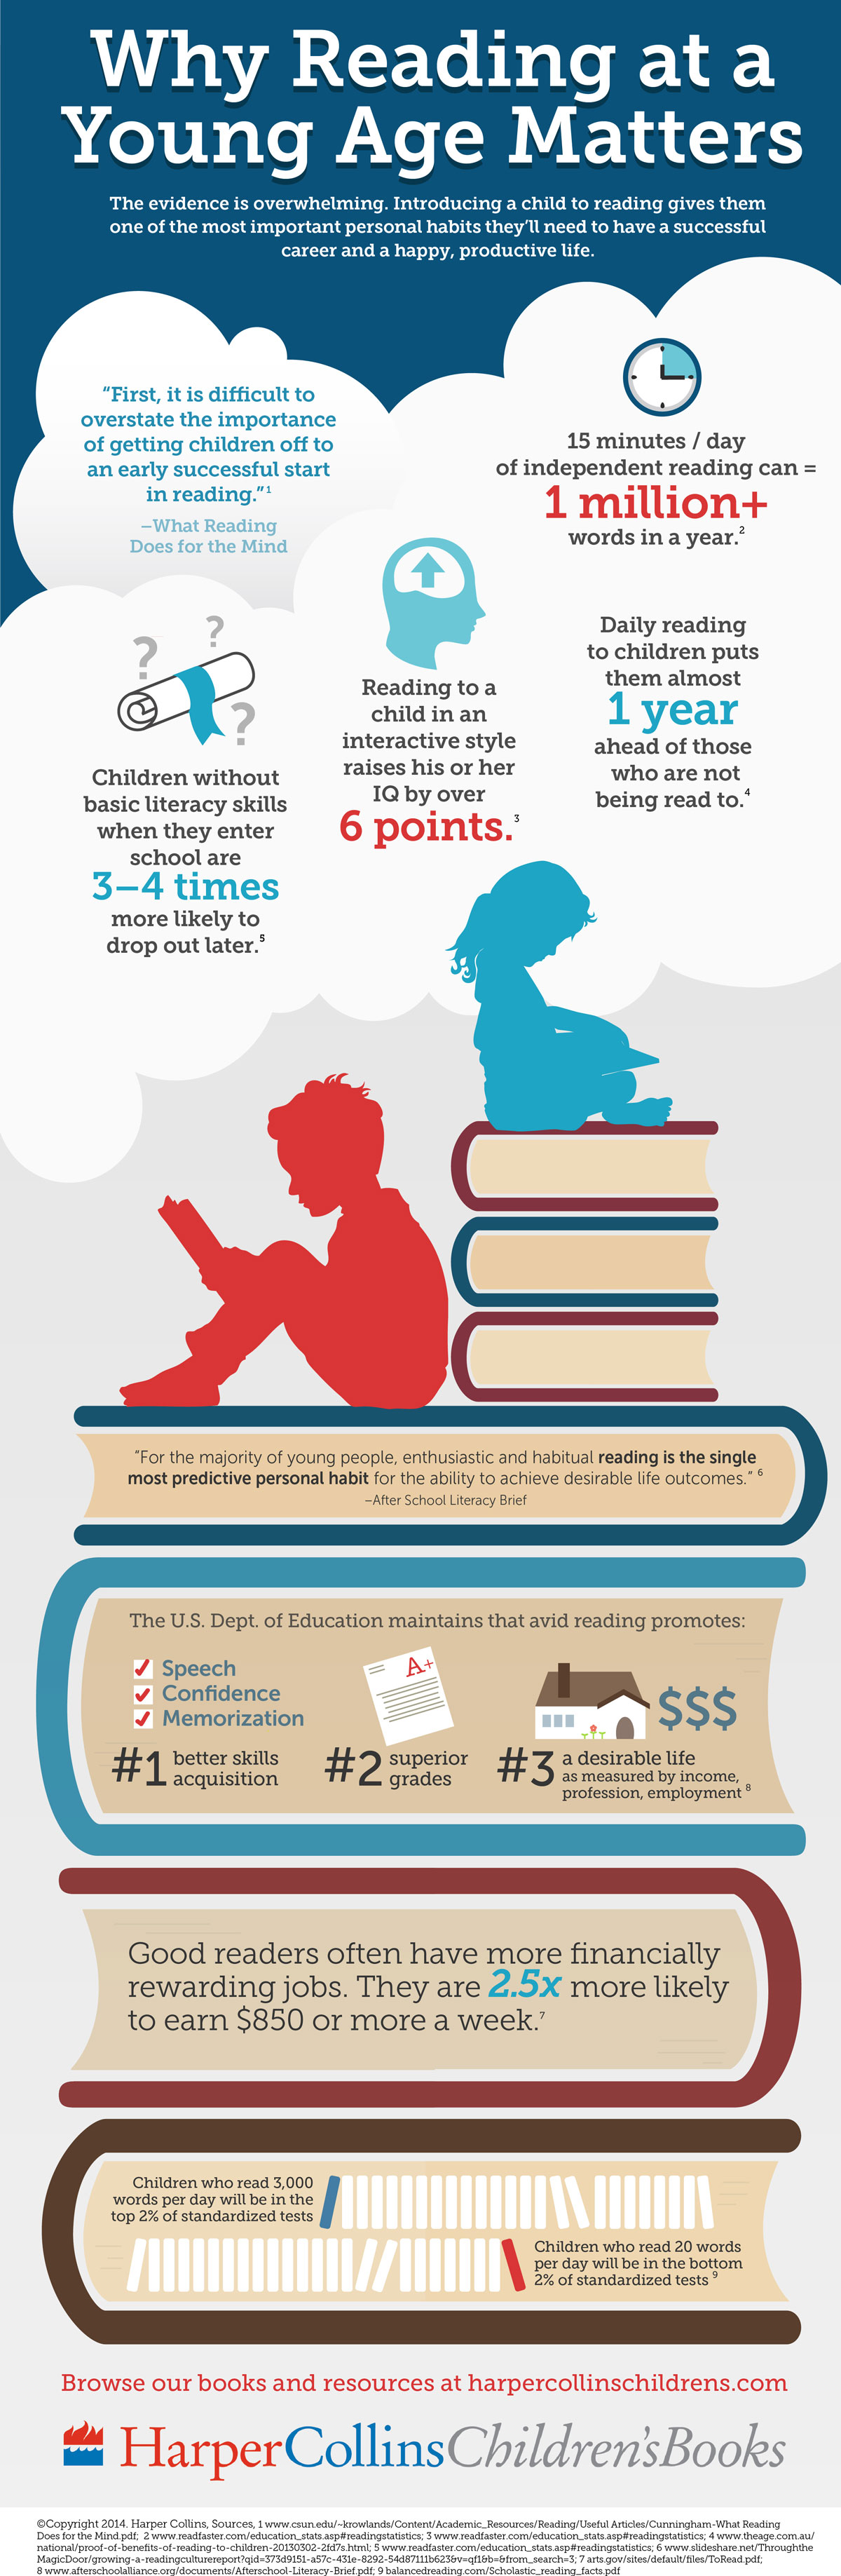 why reading matters infographic